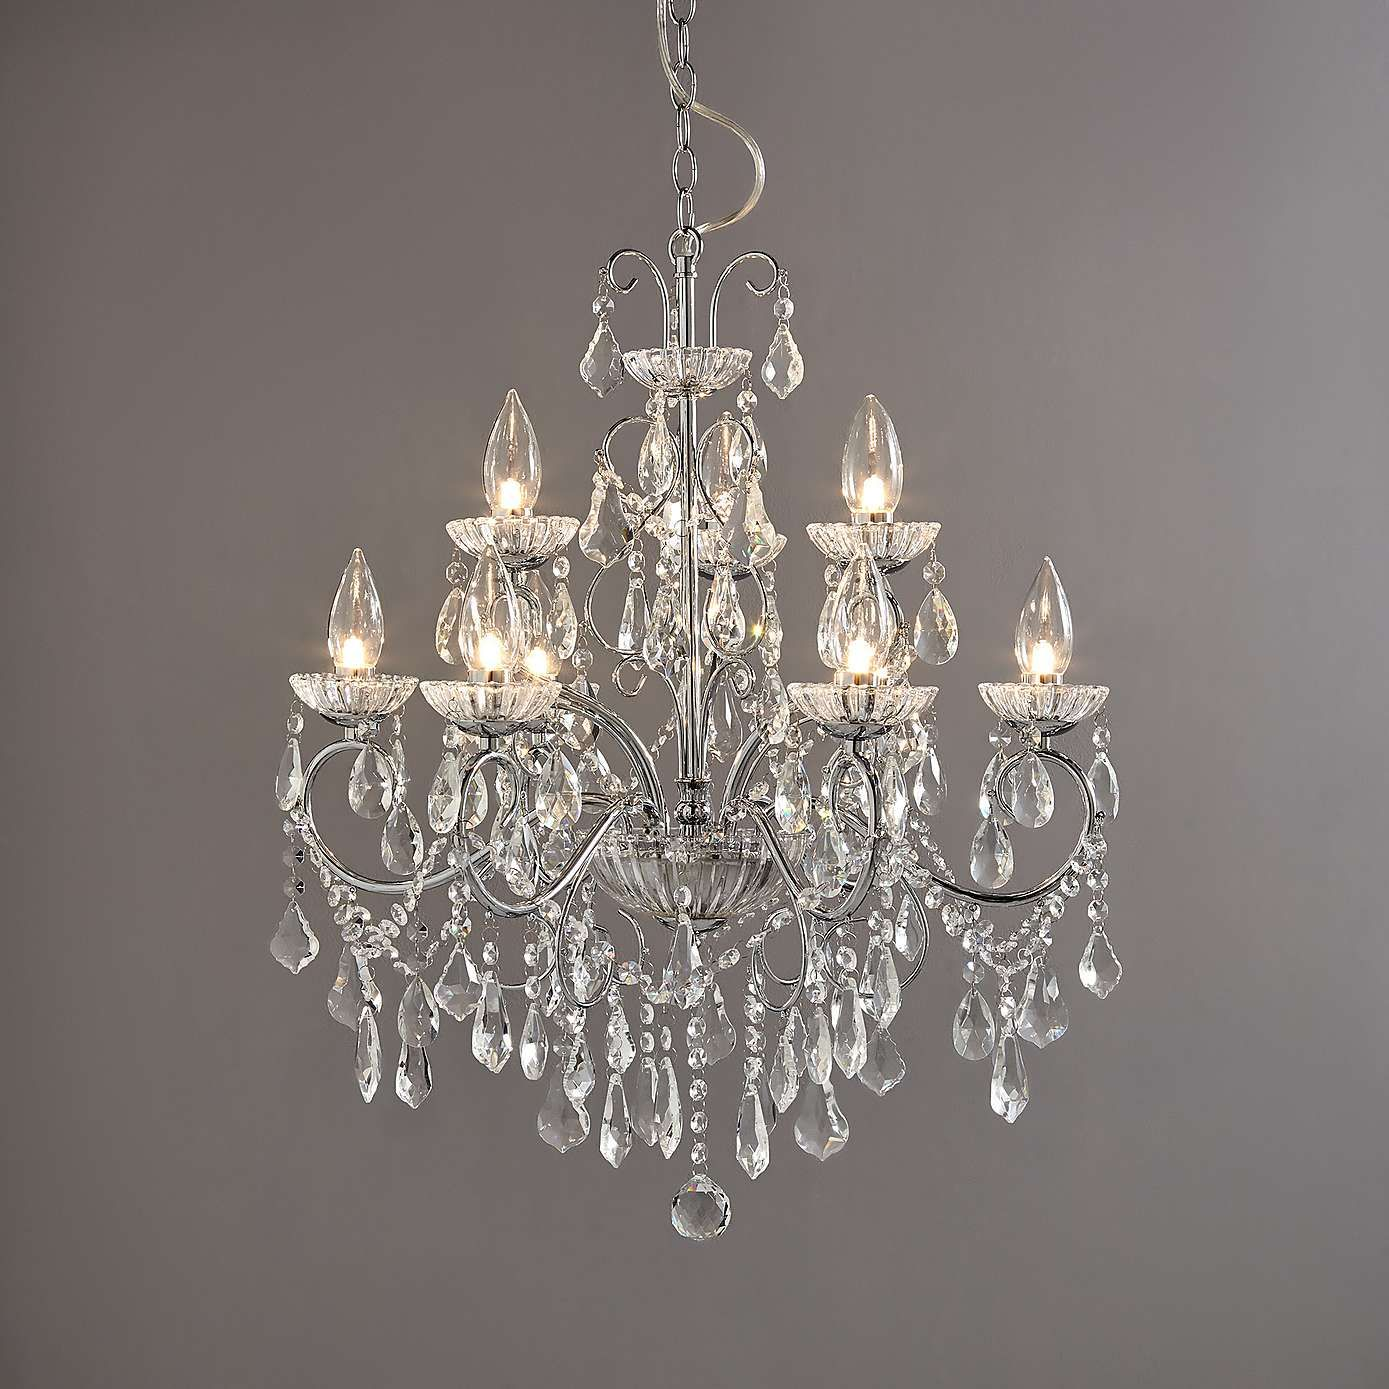 Vela 9 Light Adjustable Chrome Chandelier